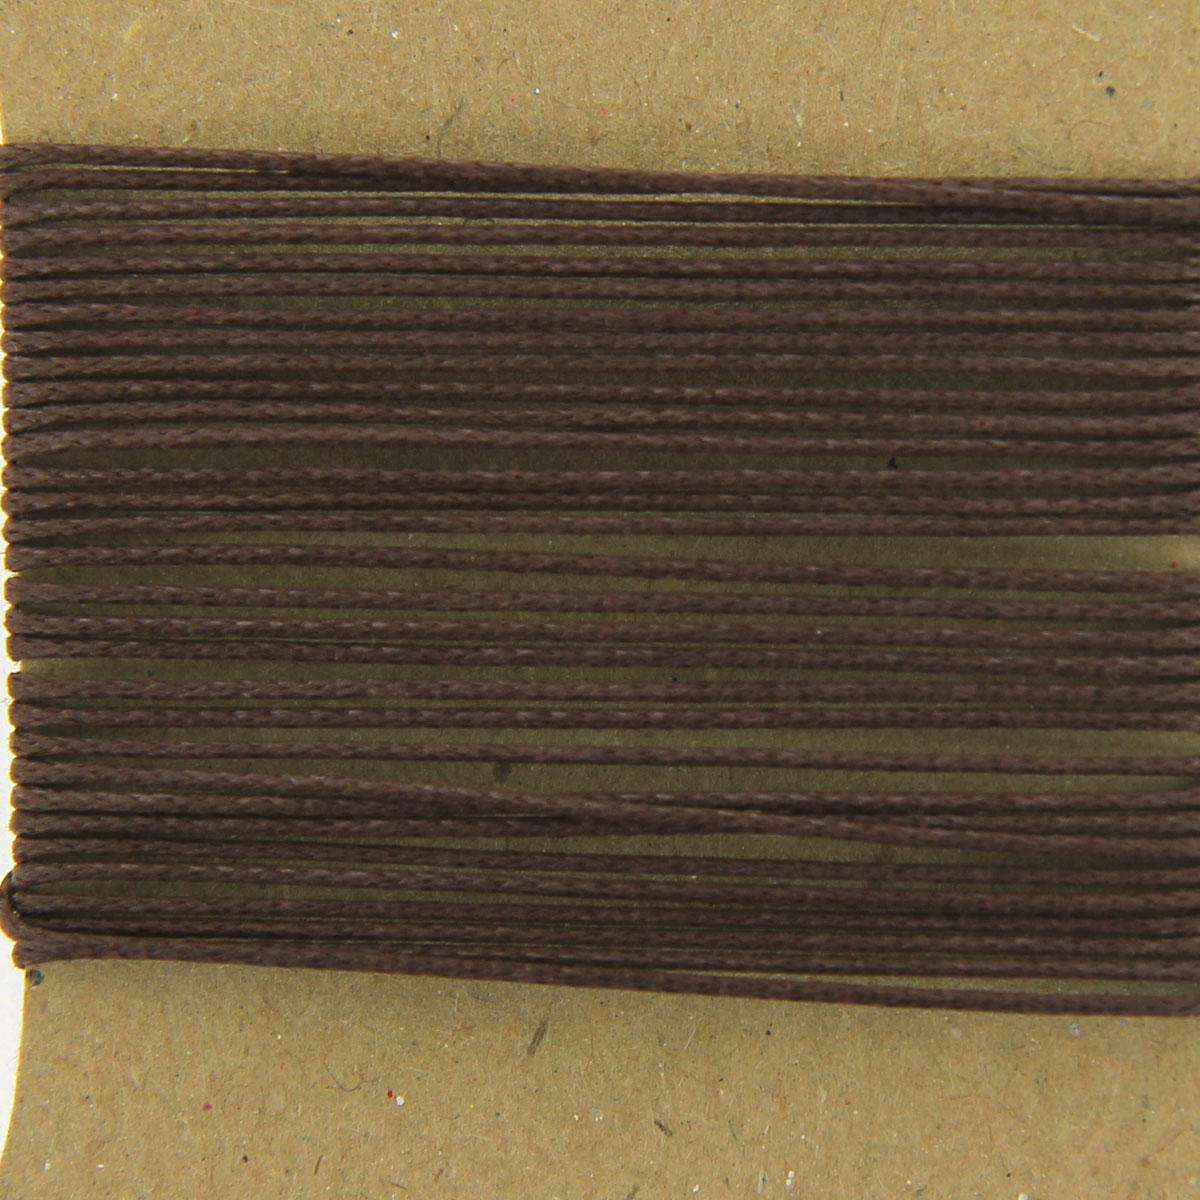 Brown thick 1.3mm Cotton Bead Cord